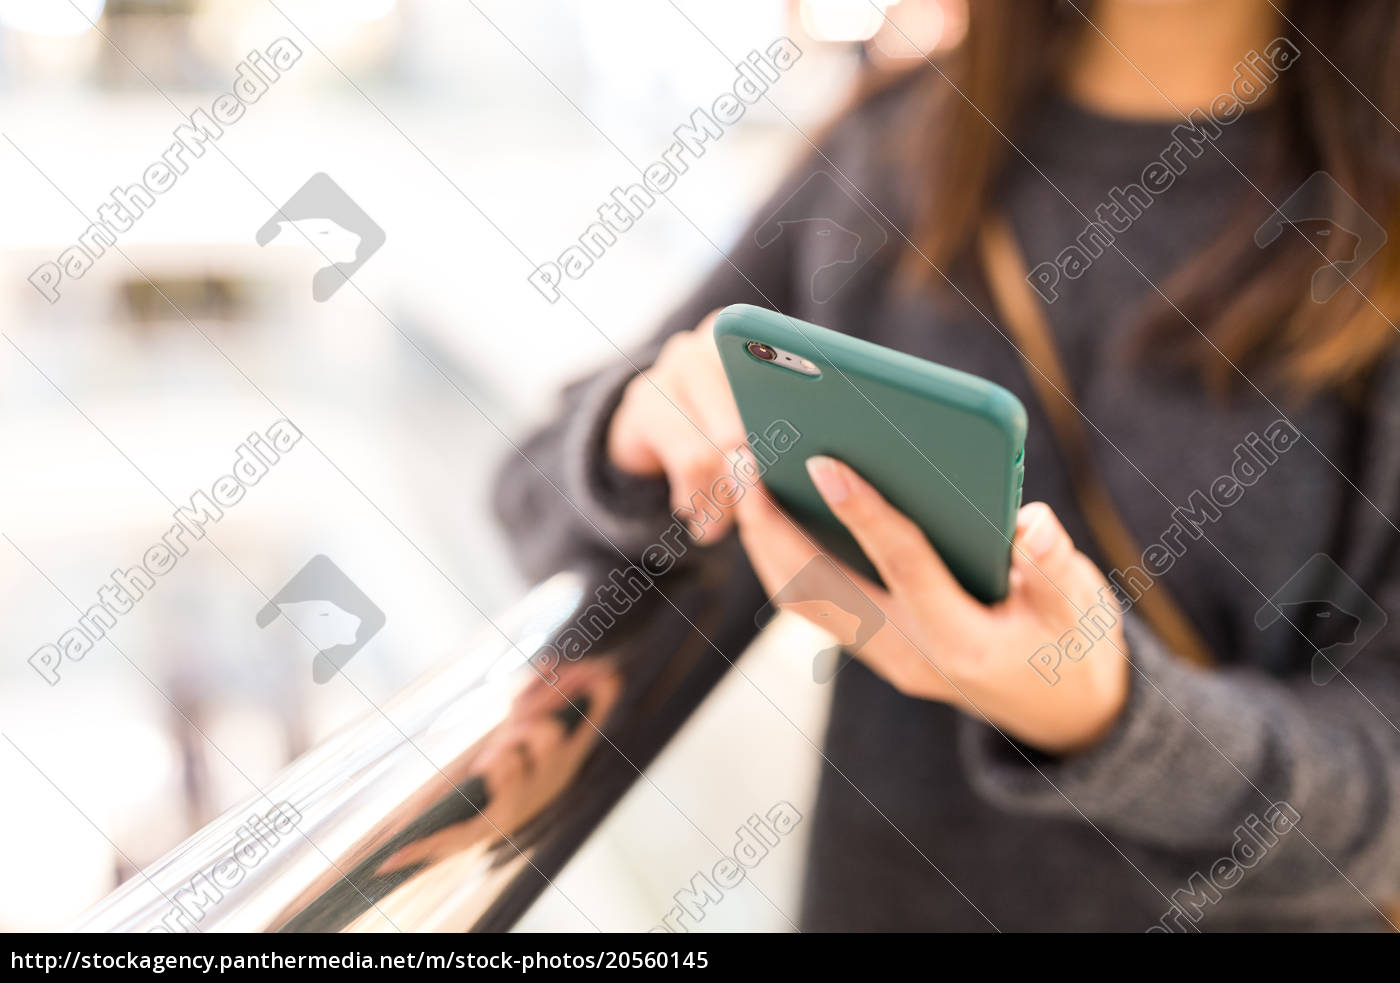 woman, sending, sms, on, mobile, phone - 20560145